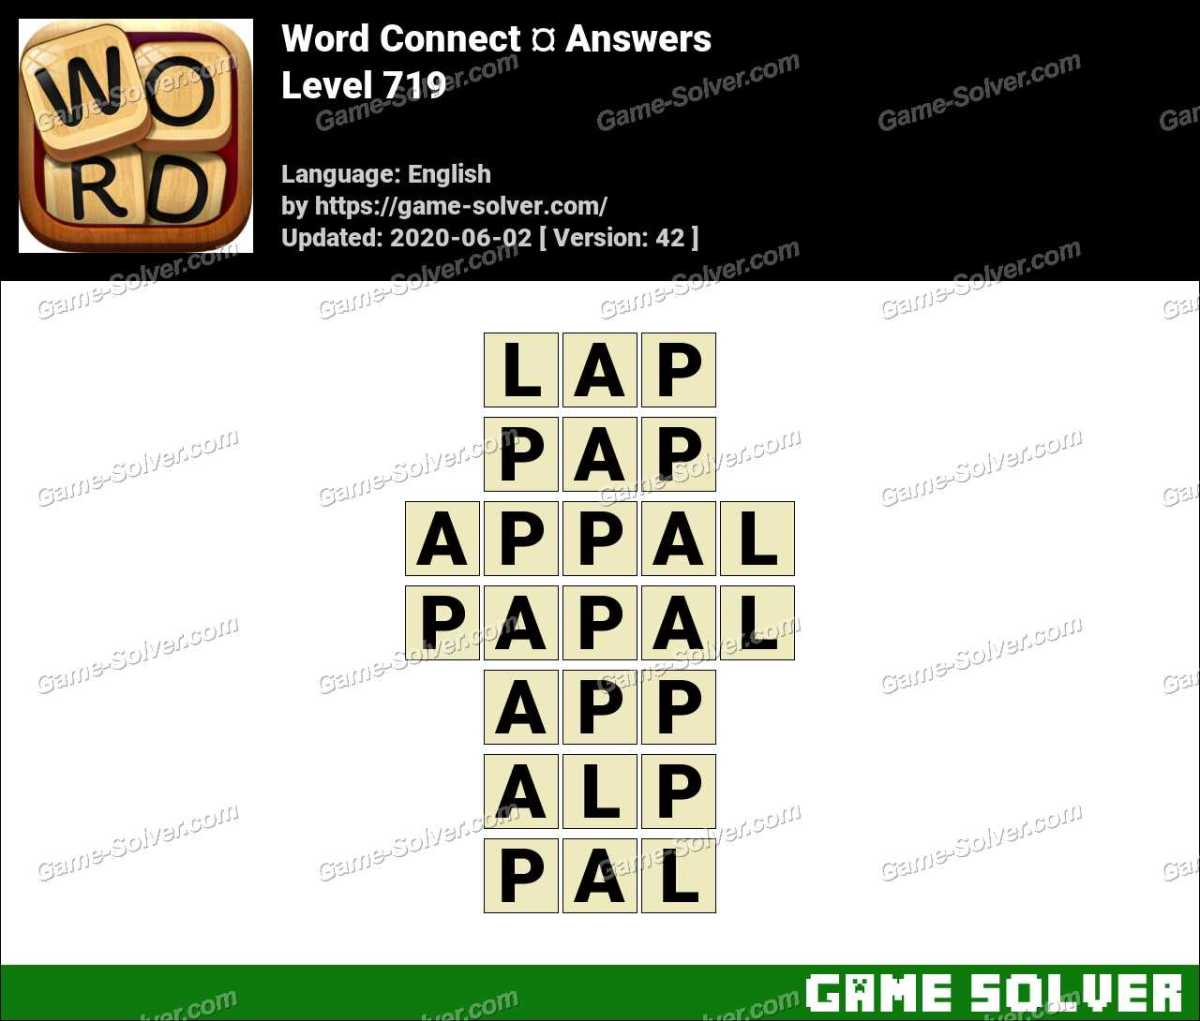 Word Connect Level 719 Answers